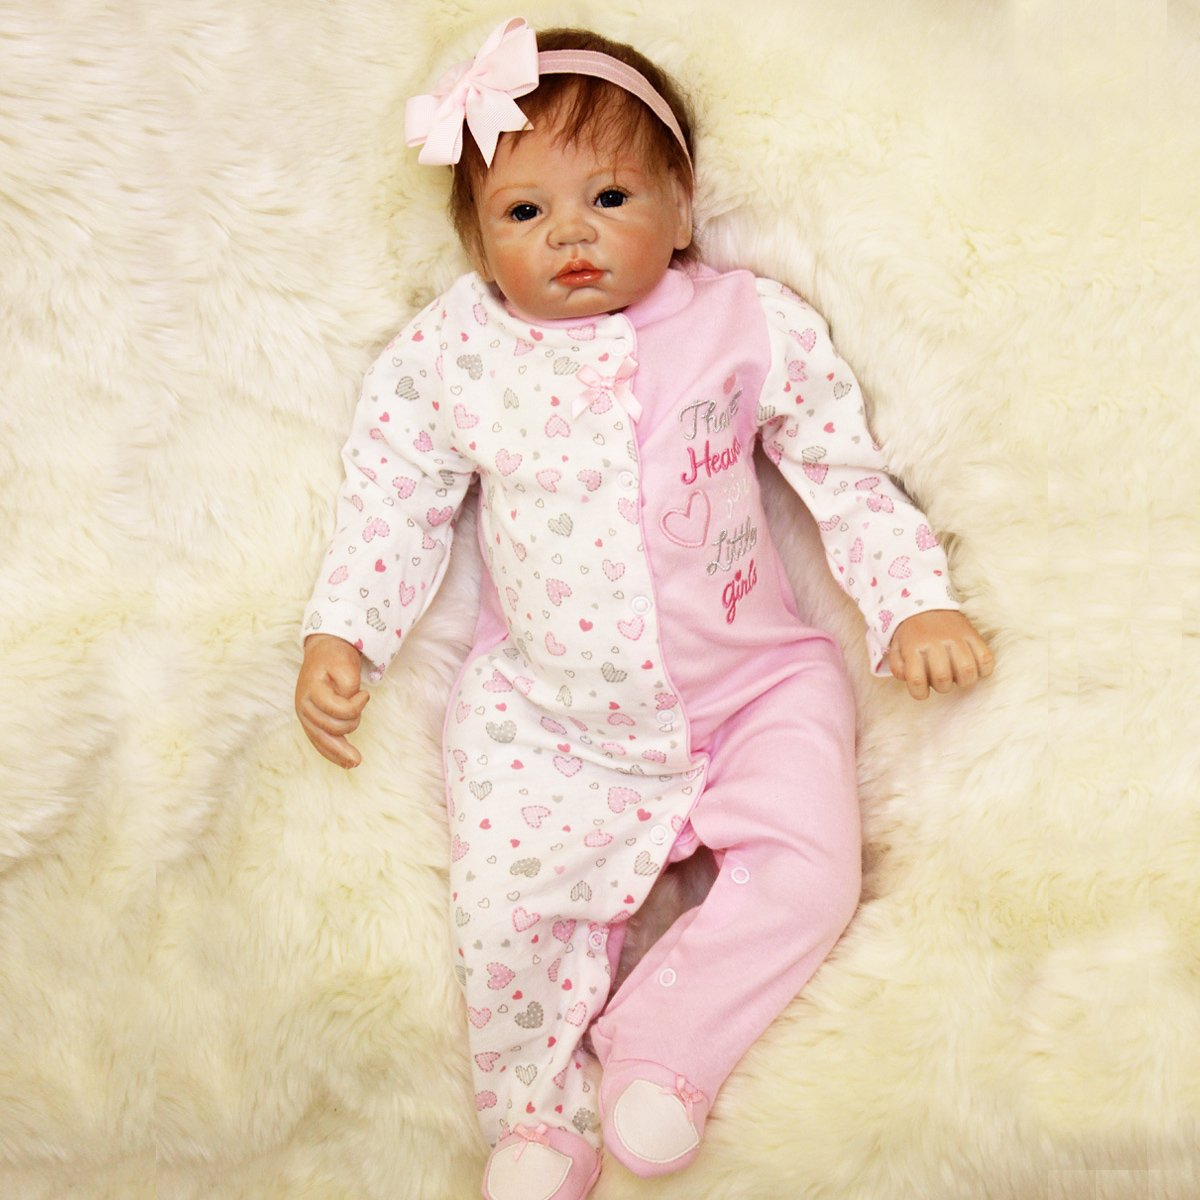 GGGarden 22inch Reborn Baby Girl Doll Silicone Handmade Girl Lifelike Play House Toy